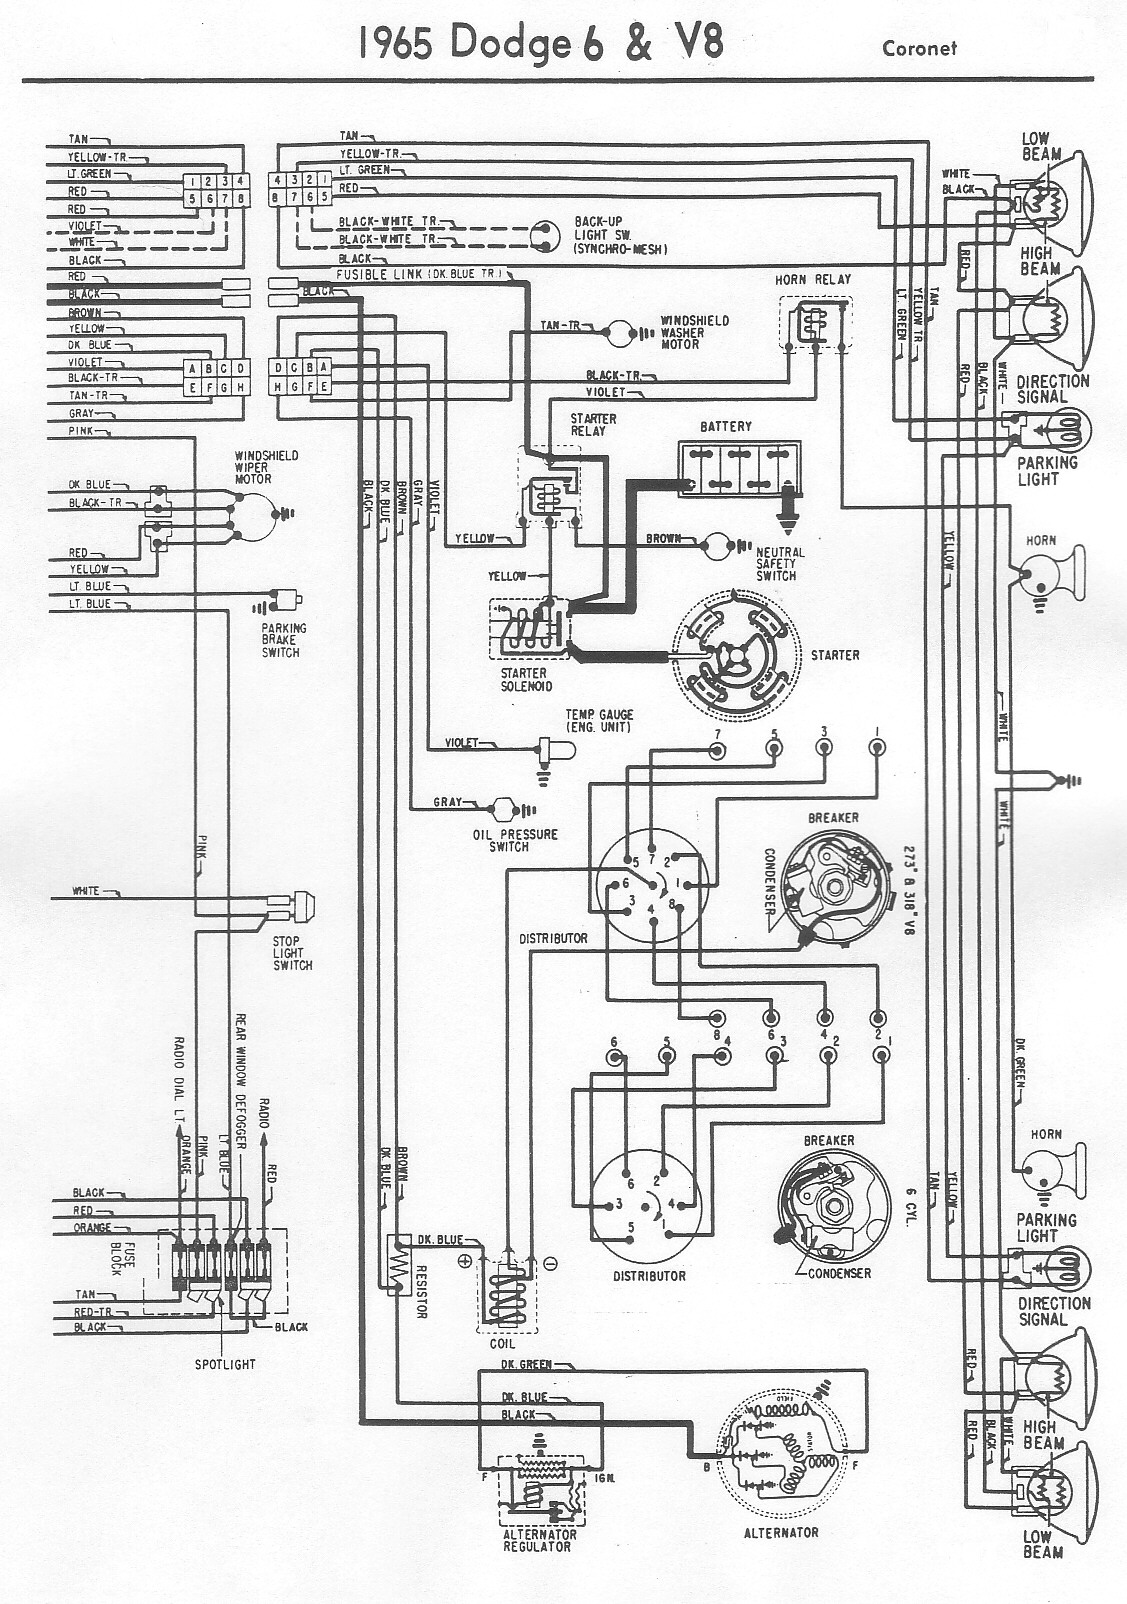 hight resolution of 06 dodge charger wiring diagram